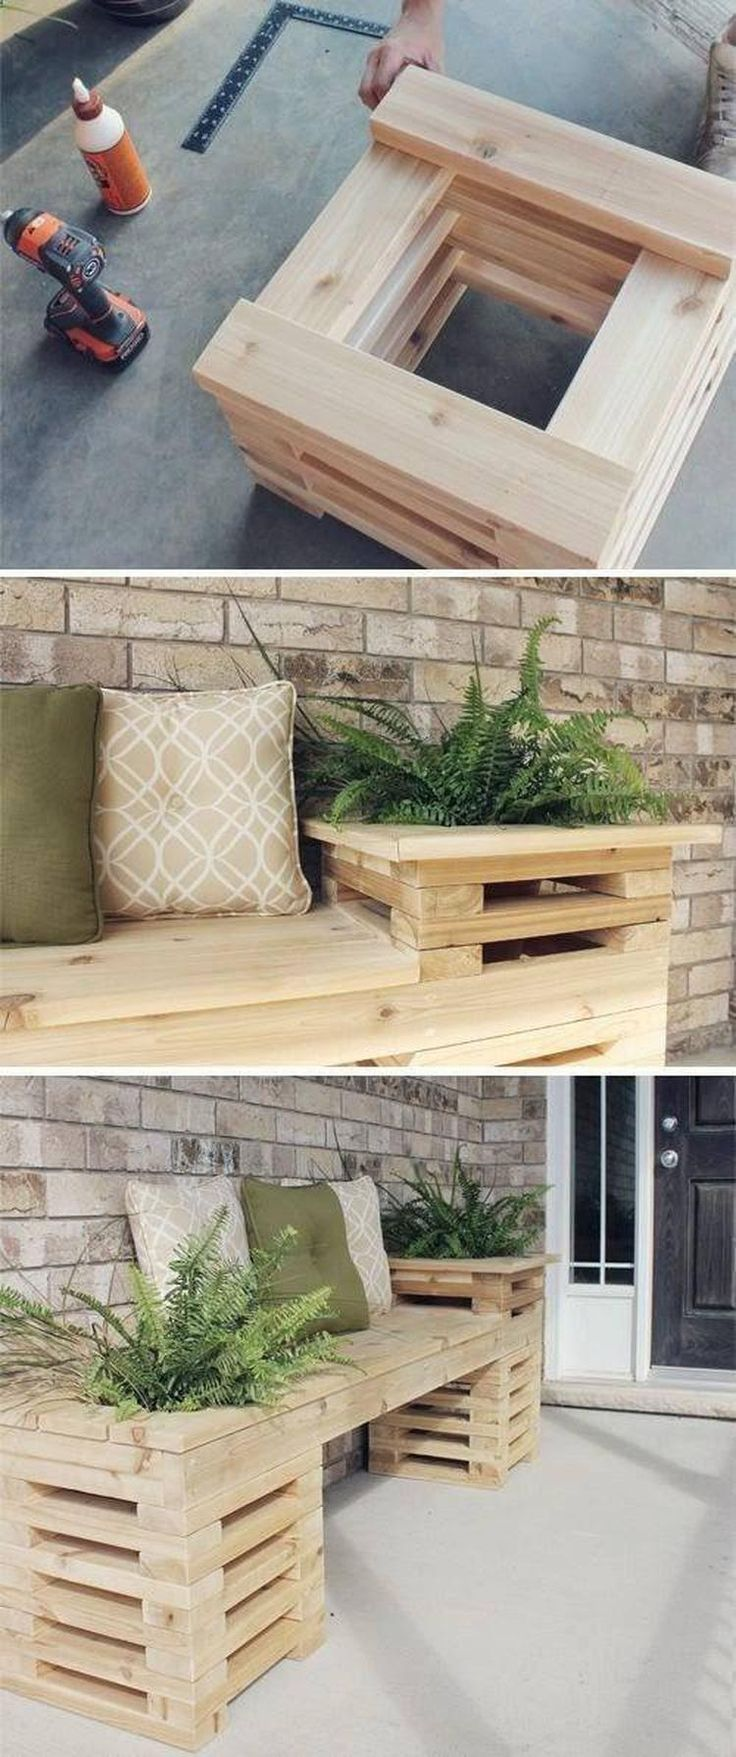 37 best g rtnern auf dem balkon images on pinterest urban gardening apartment gardening and. Black Bedroom Furniture Sets. Home Design Ideas